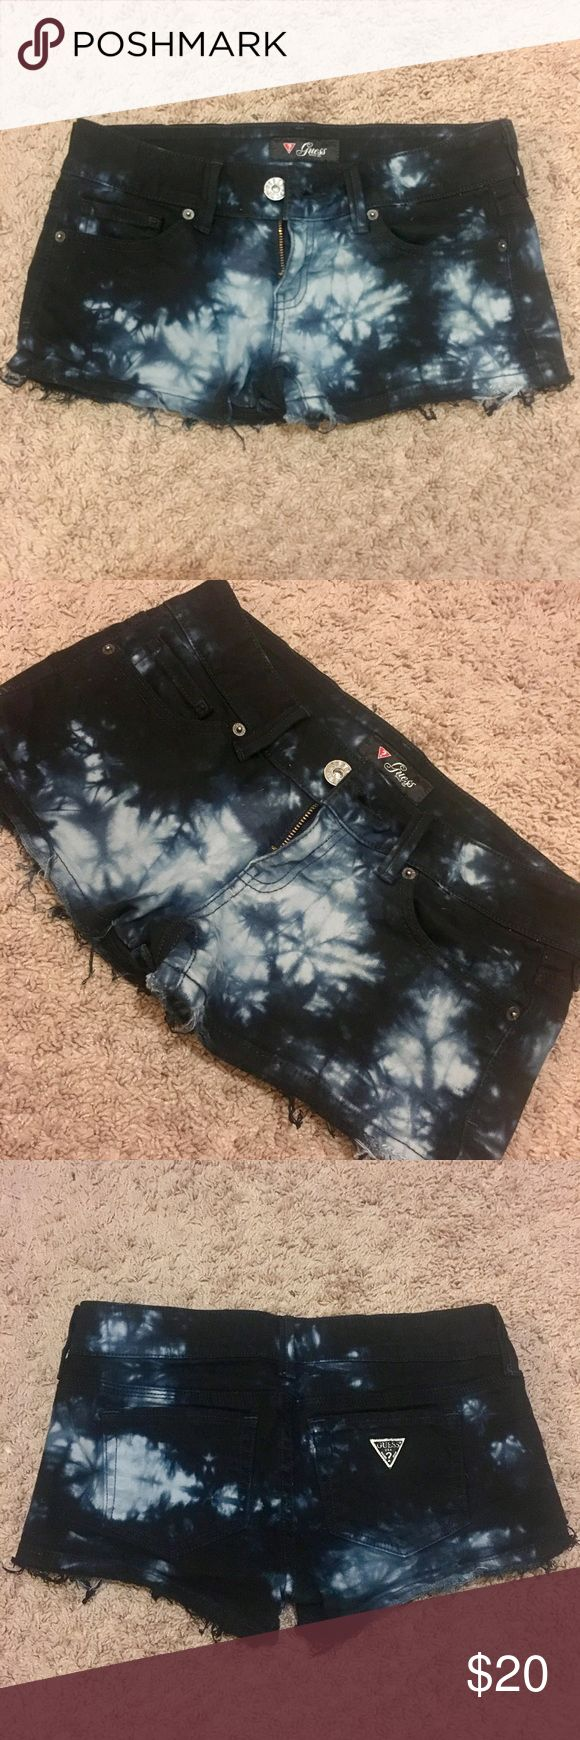 Guess black tie dye shorts Adorable black tie dye shorts from Guess. Worn once, washed once and air dried. Slightly distressed, excellent condition! Guess Shorts Jean Shorts